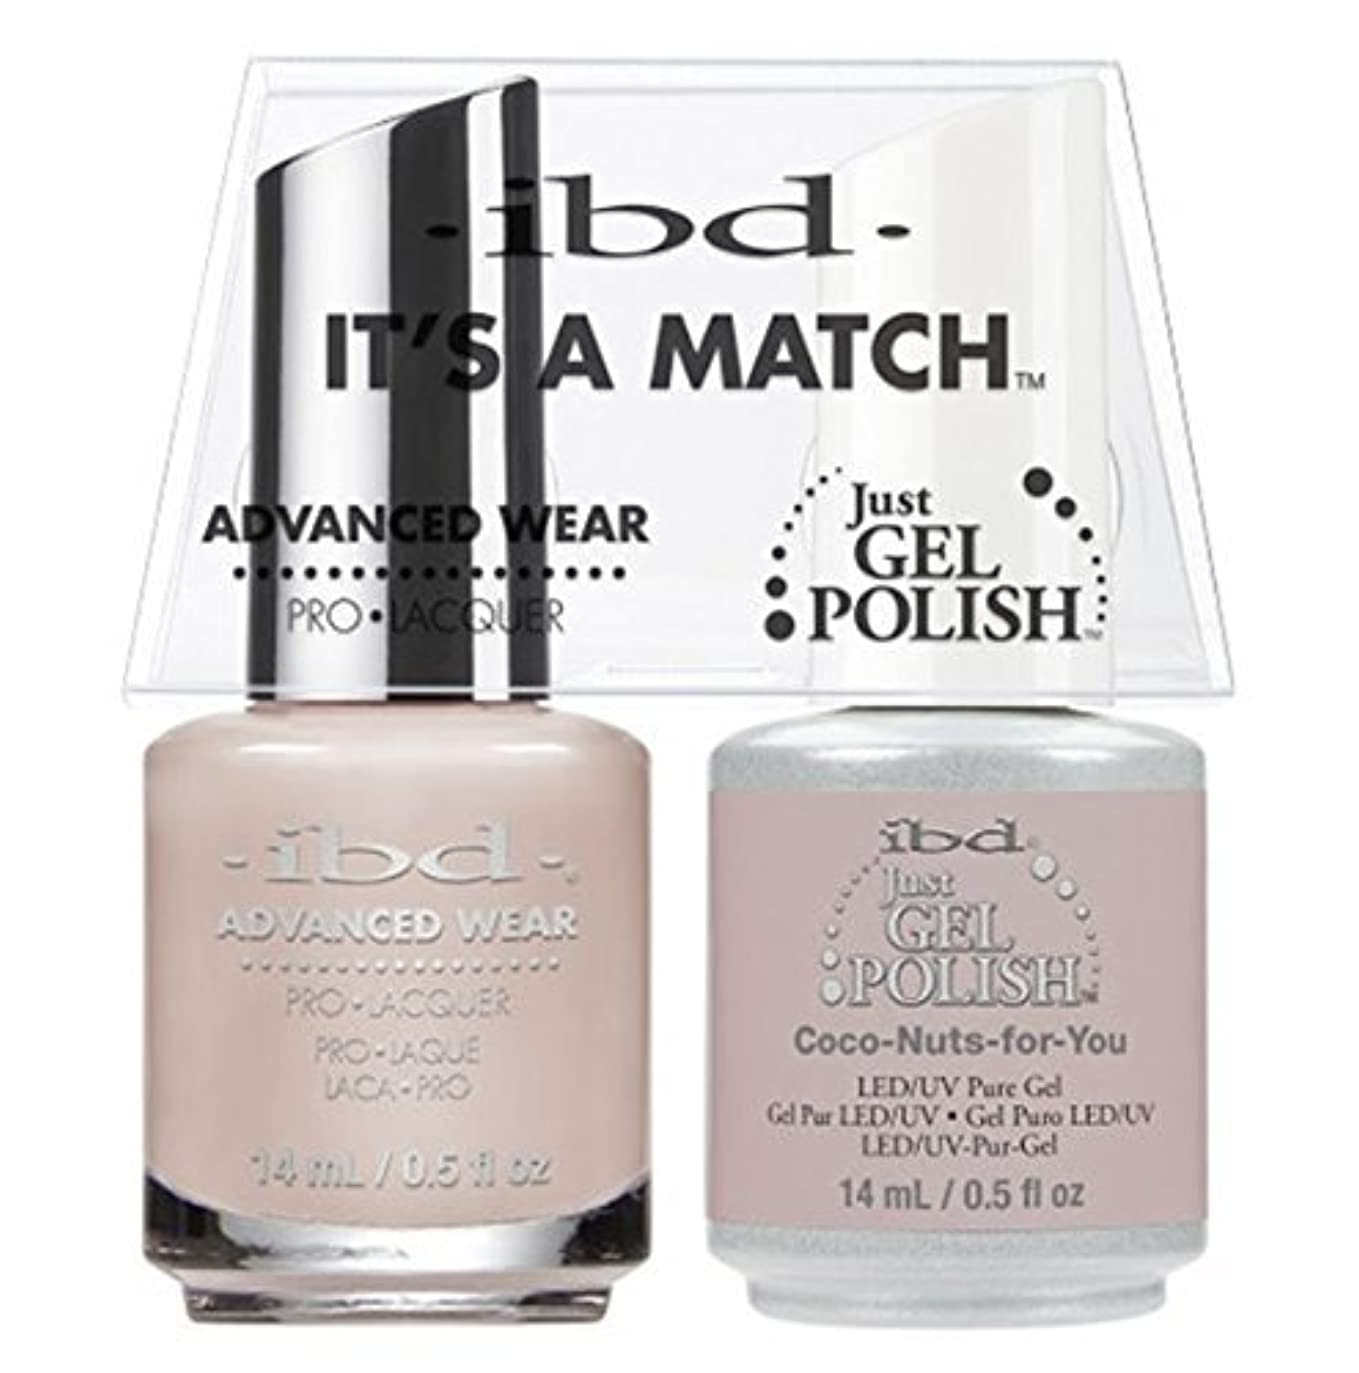 真似る参加者スリップシューズibd - It's A Match -Duo Pack- Coco-nuts-for-You - 14 mL / 0.5 oz Each